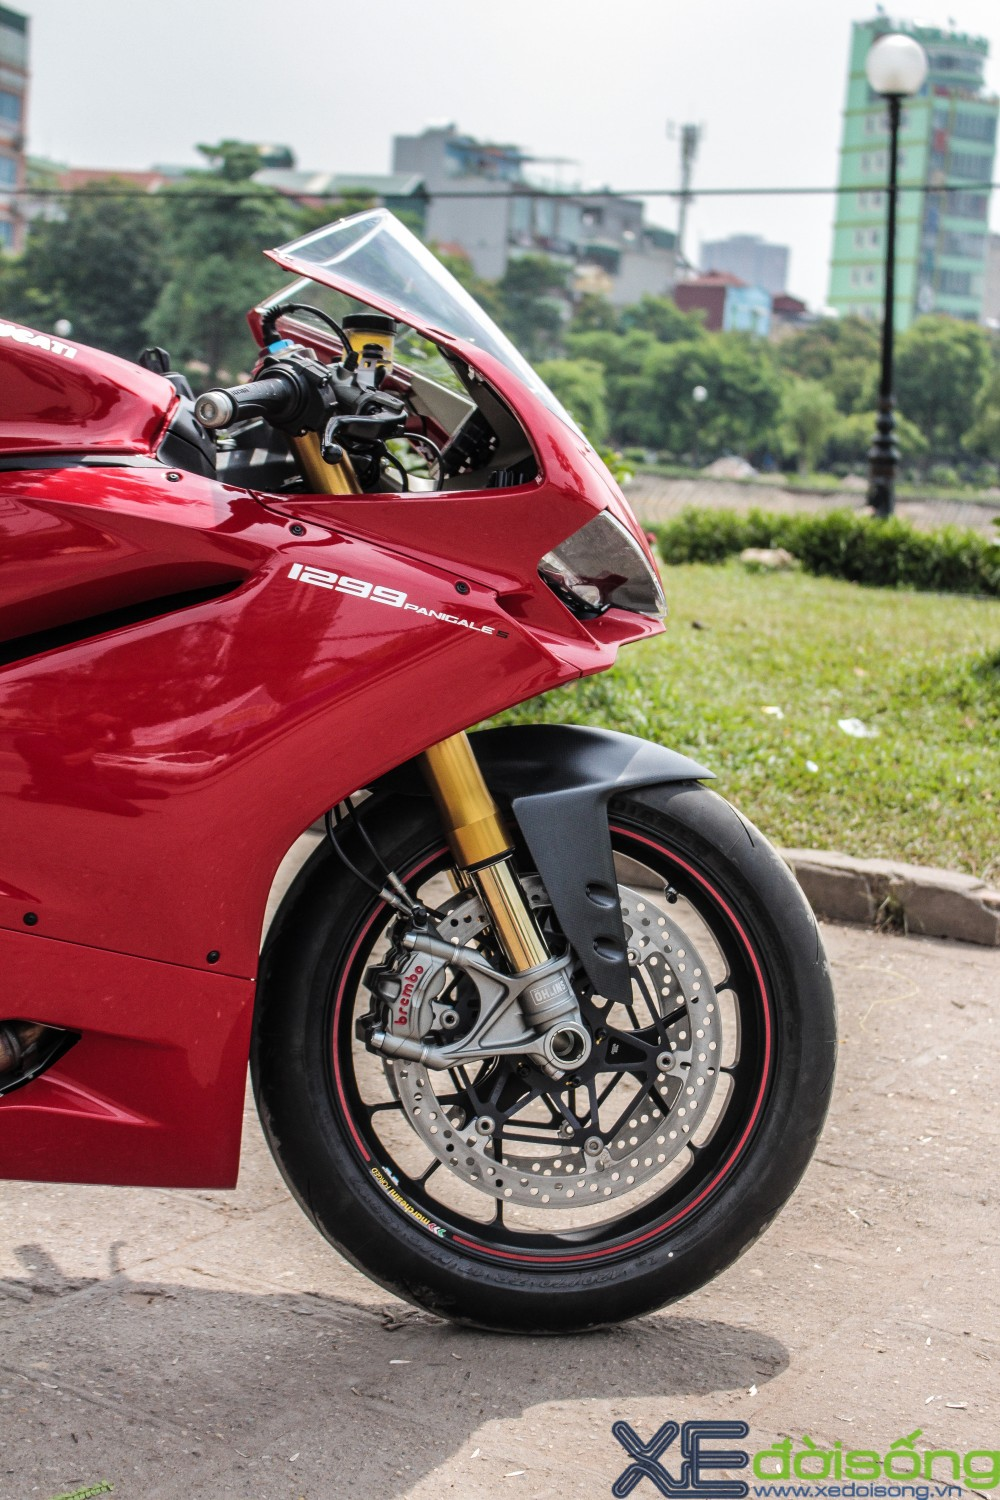 Can canh Ducati 1299 Panigale S dau tien tai Viet Nam voi gia 1 ty dong - 4